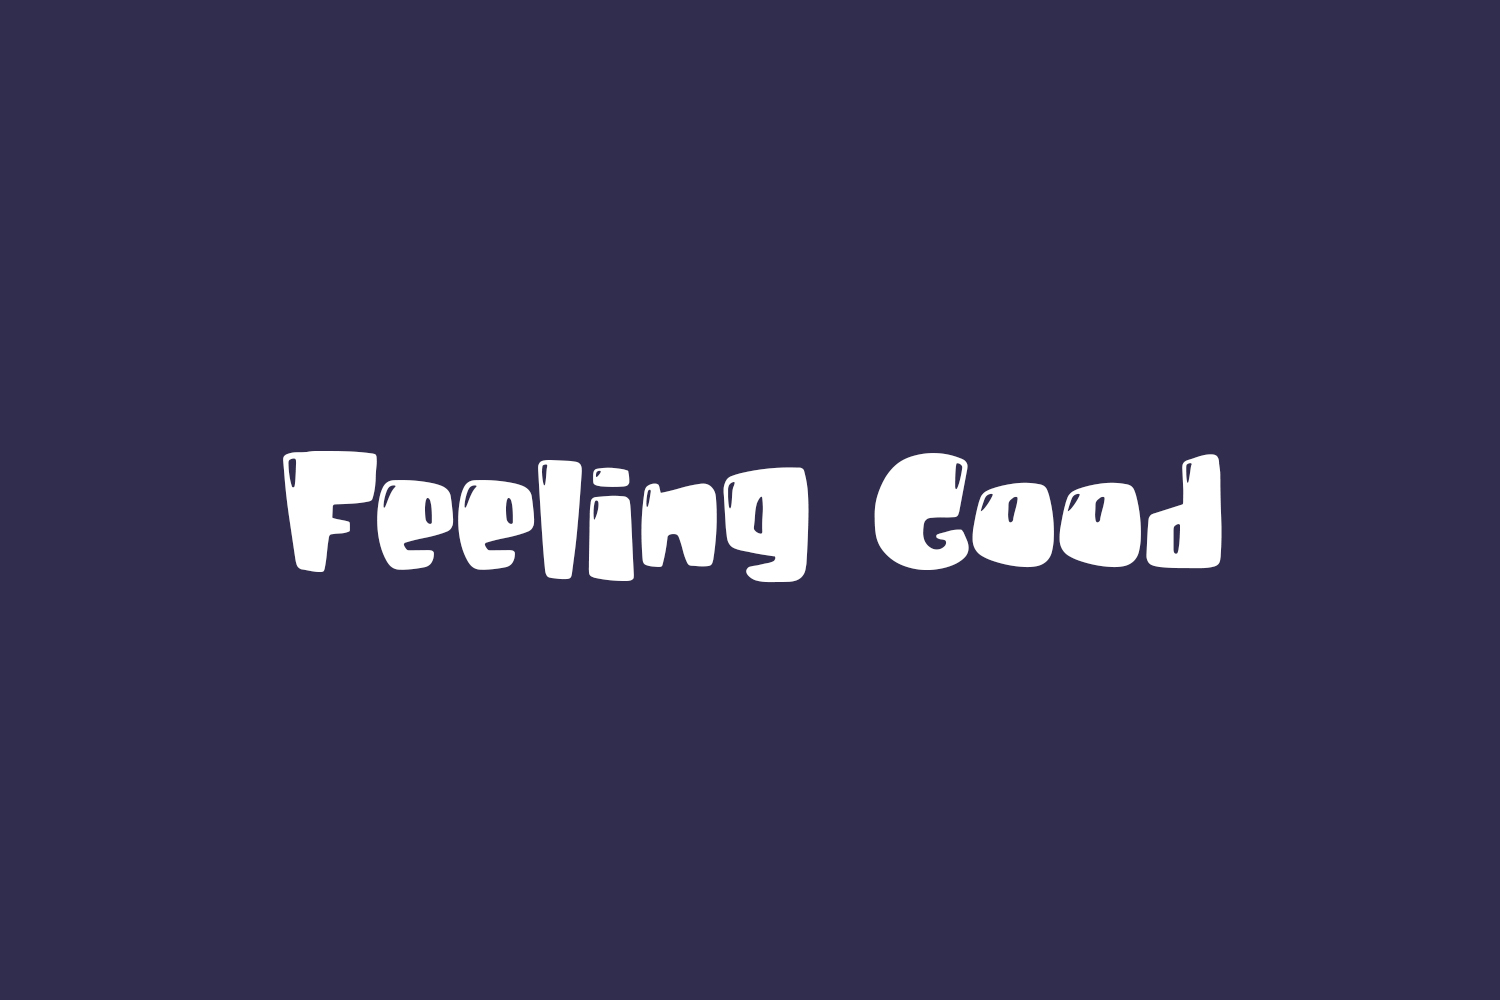 Feeling Good Free Font